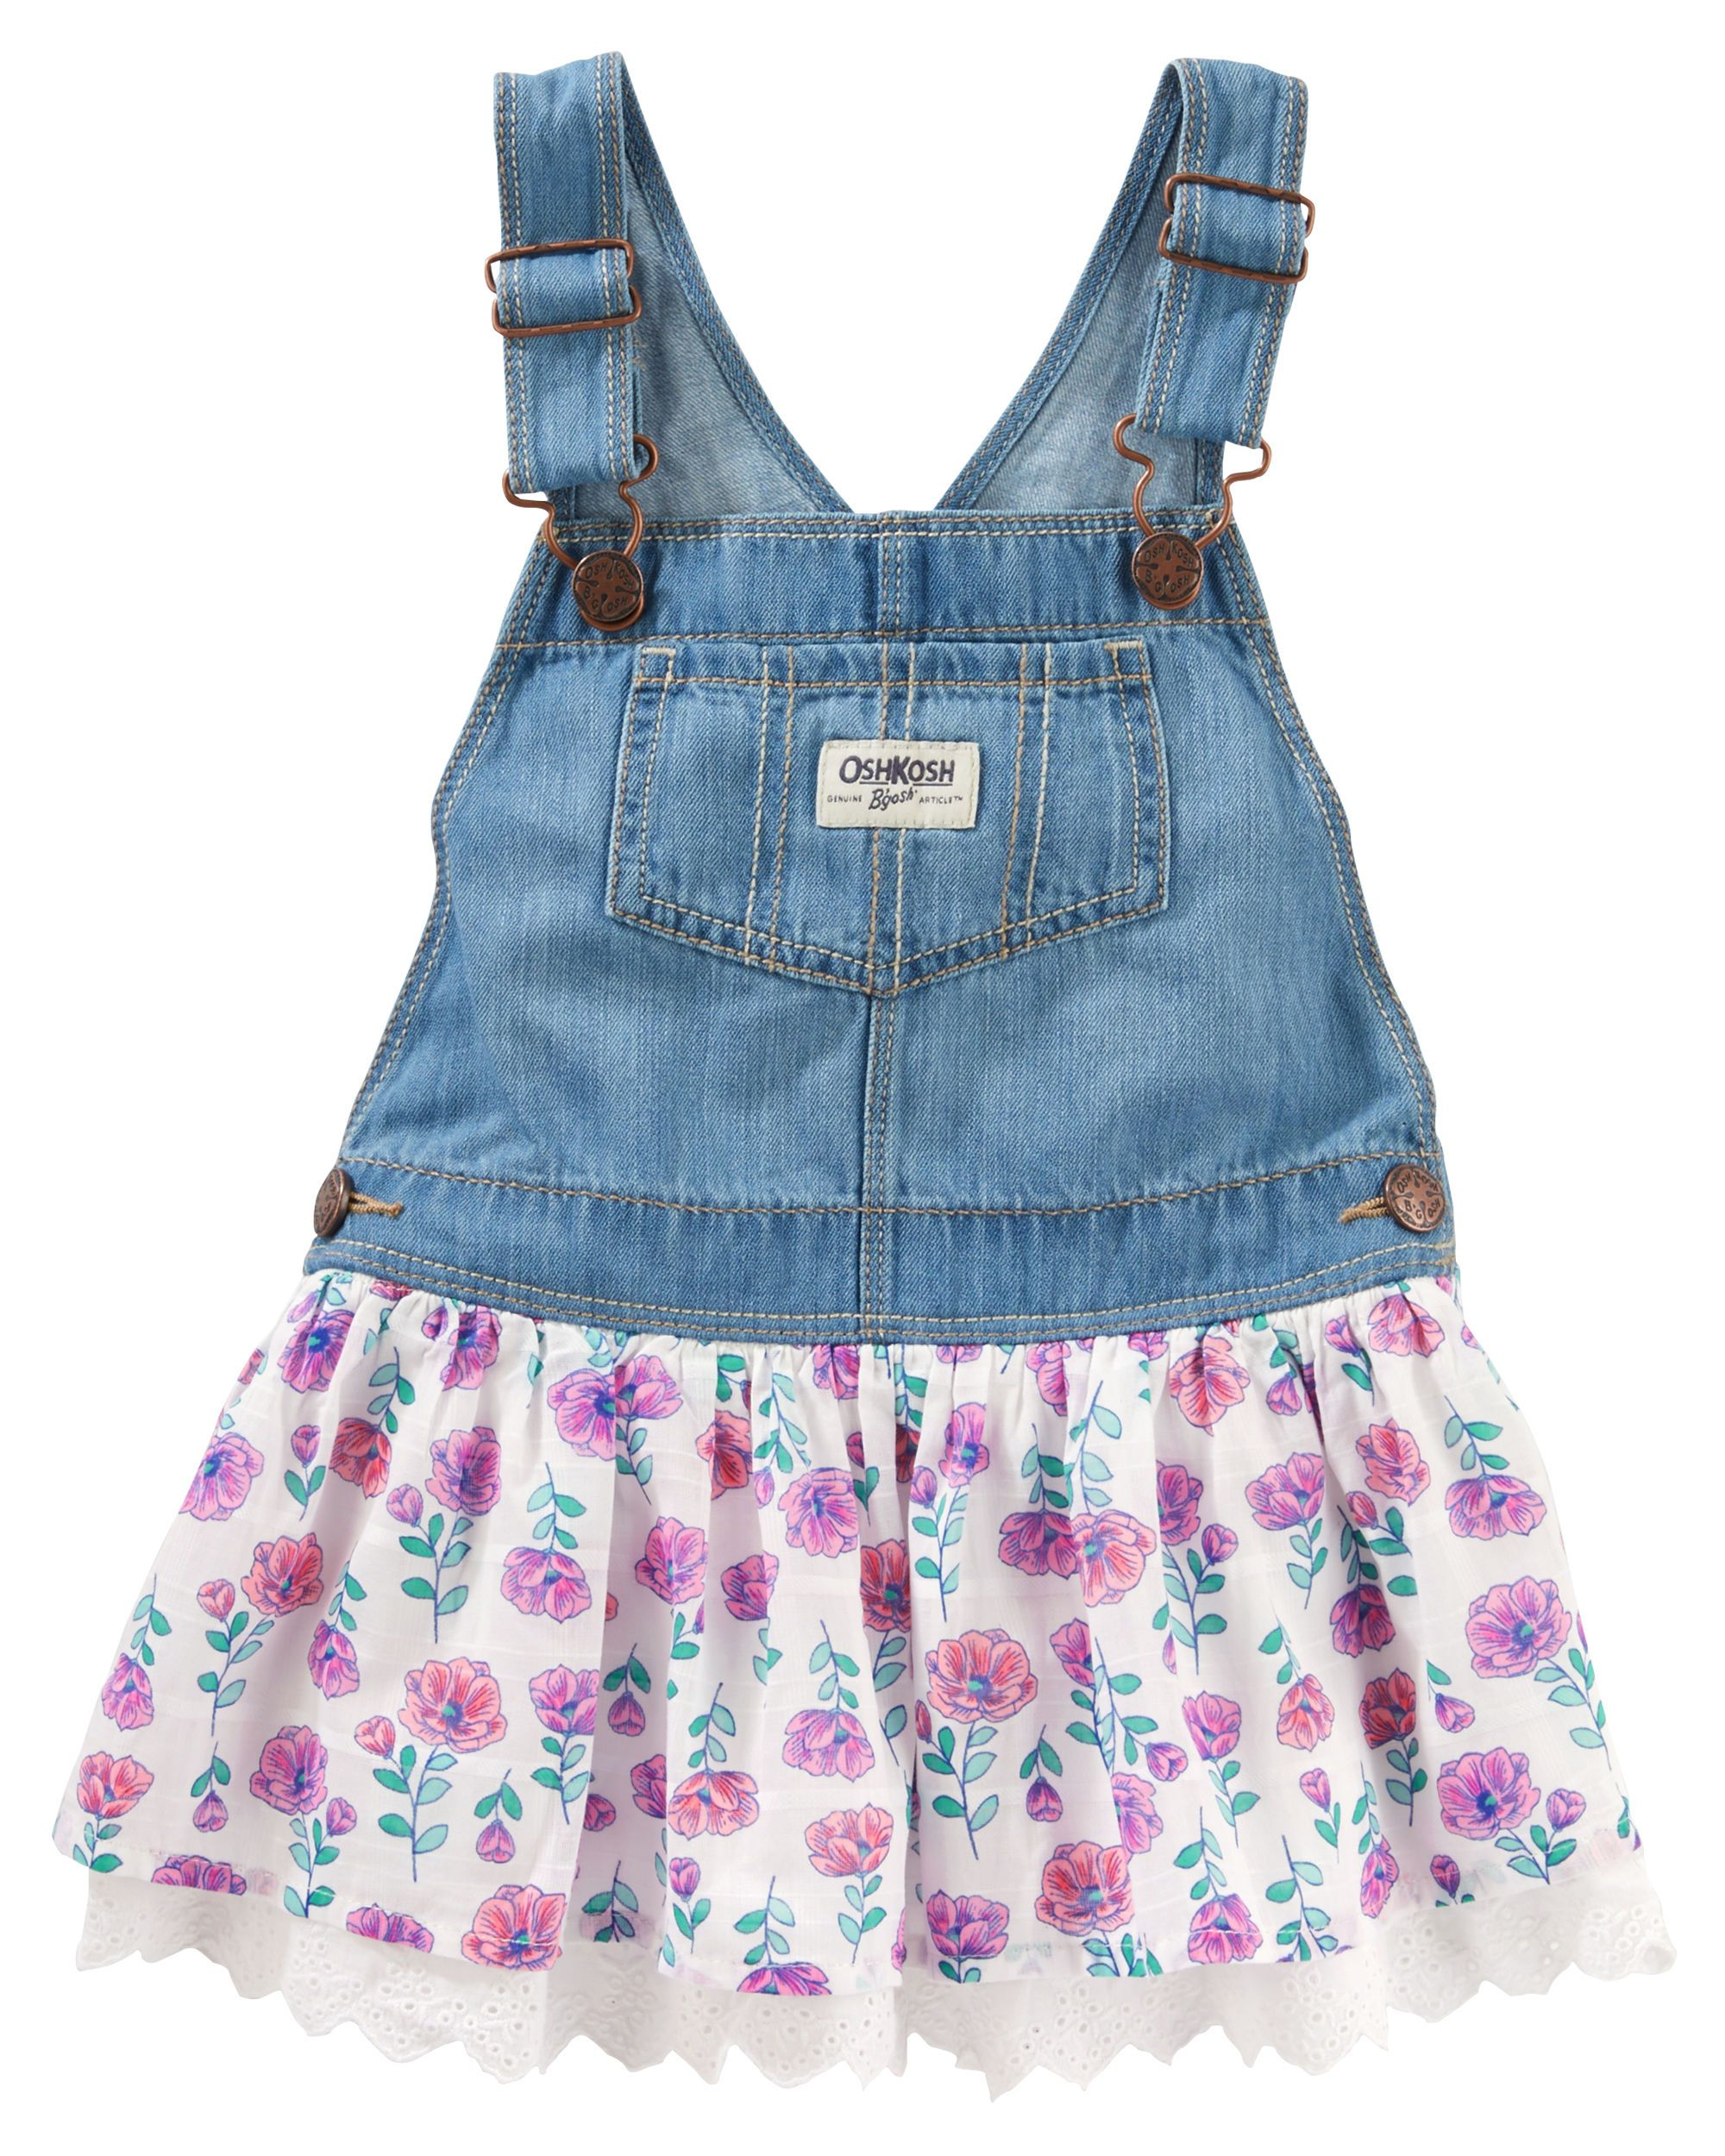 4160922737 Floral print and eyelet trim ruffles up classic OshKosh overall styling for  a charming twist on our genuine article.